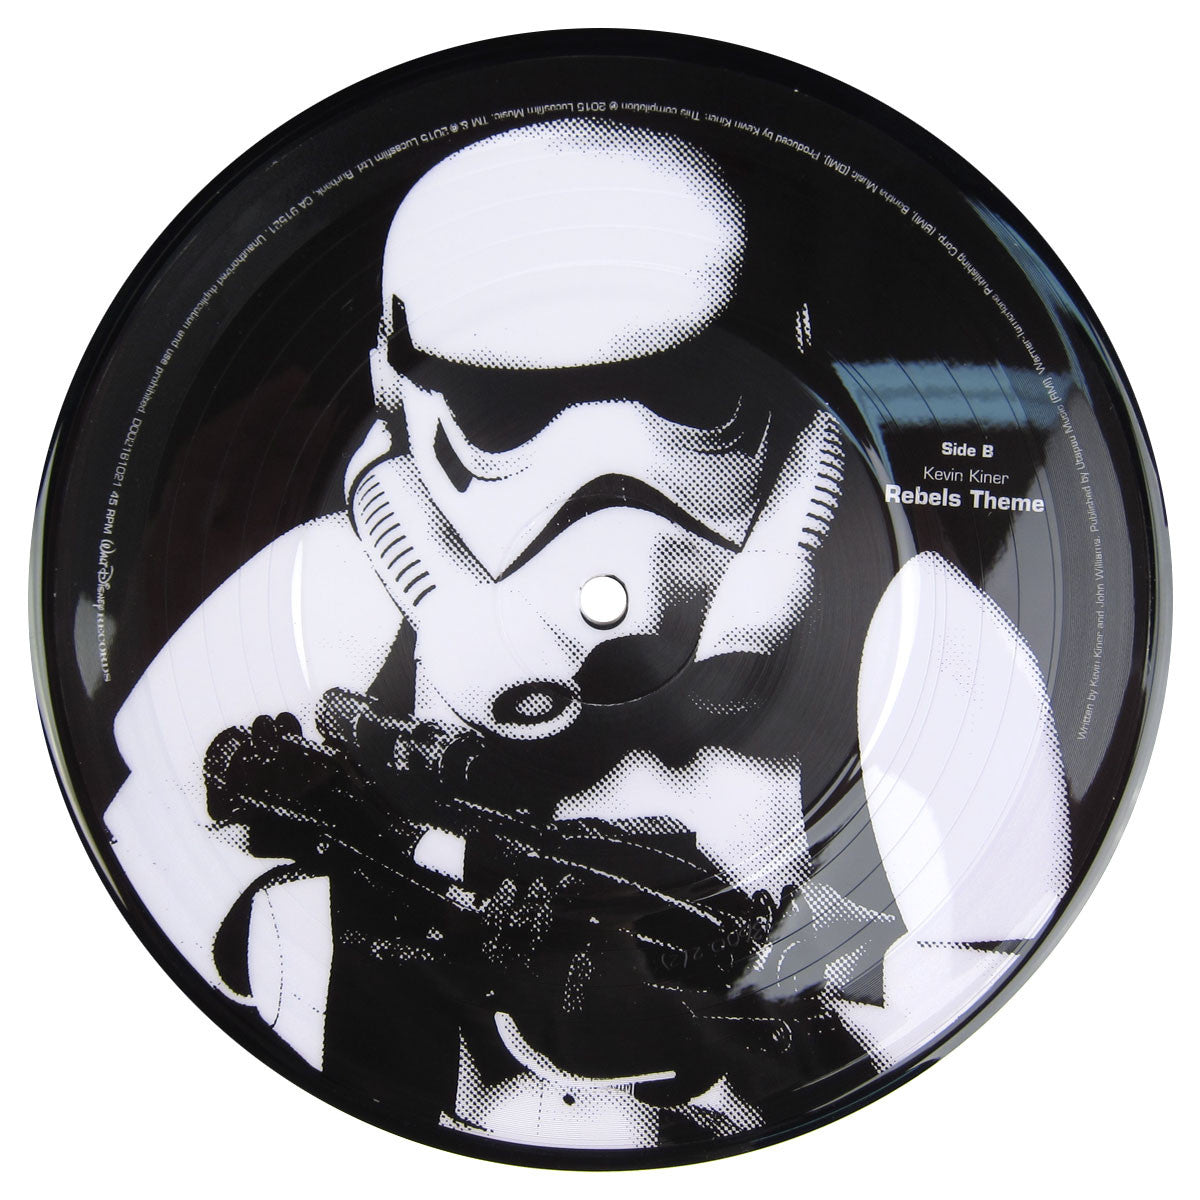 Kevin Kiner: Star Wars Rebel's Theme (Flux Pavillion Remix) Pic Disc Vinyl 7""